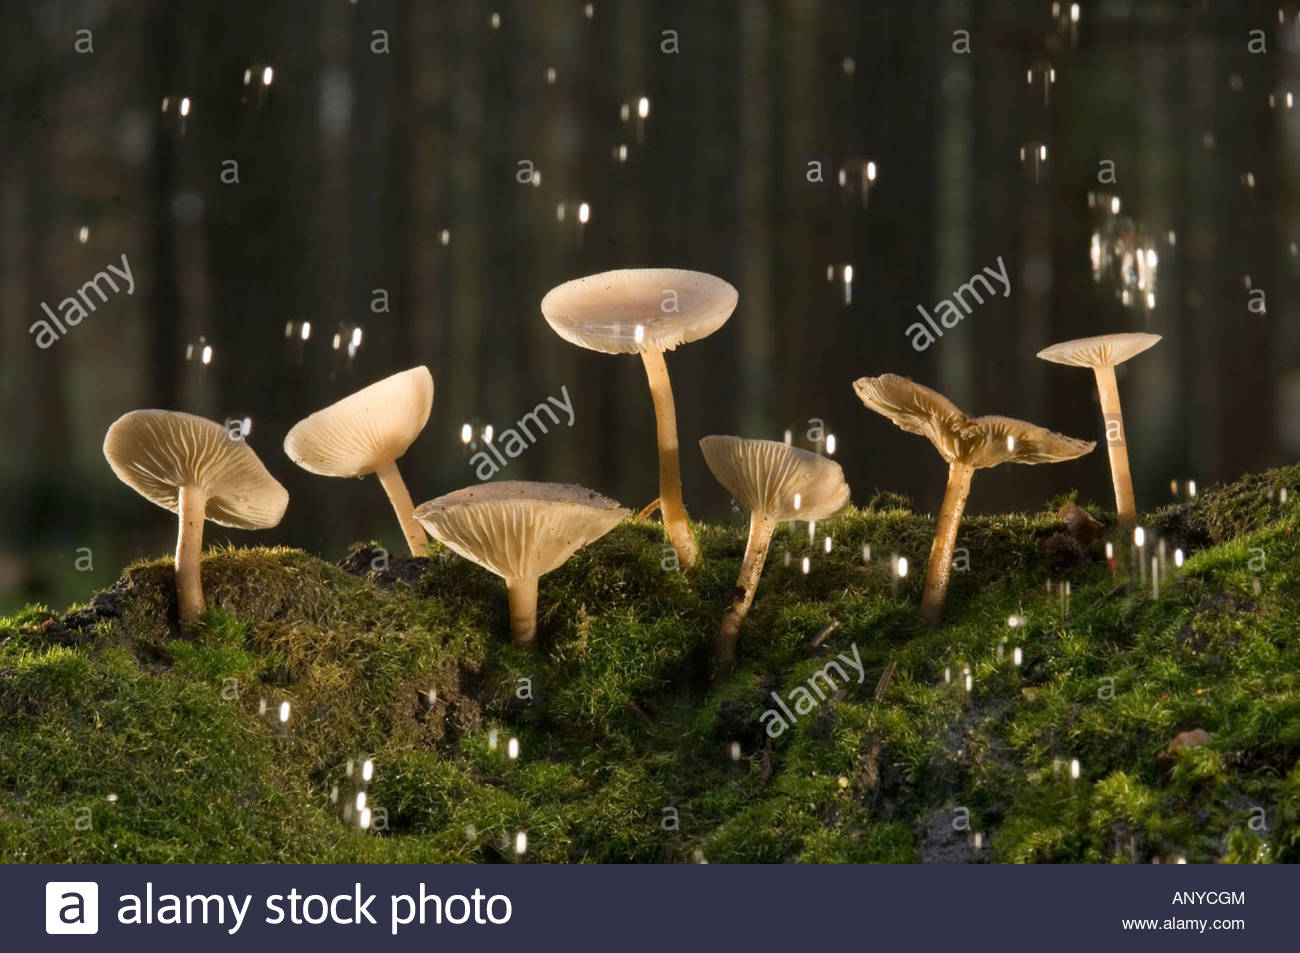 Fairy Bonnet toadstools Coprinus Disseminatus weathering a storm in a Norfolk churchyard - Stock Image